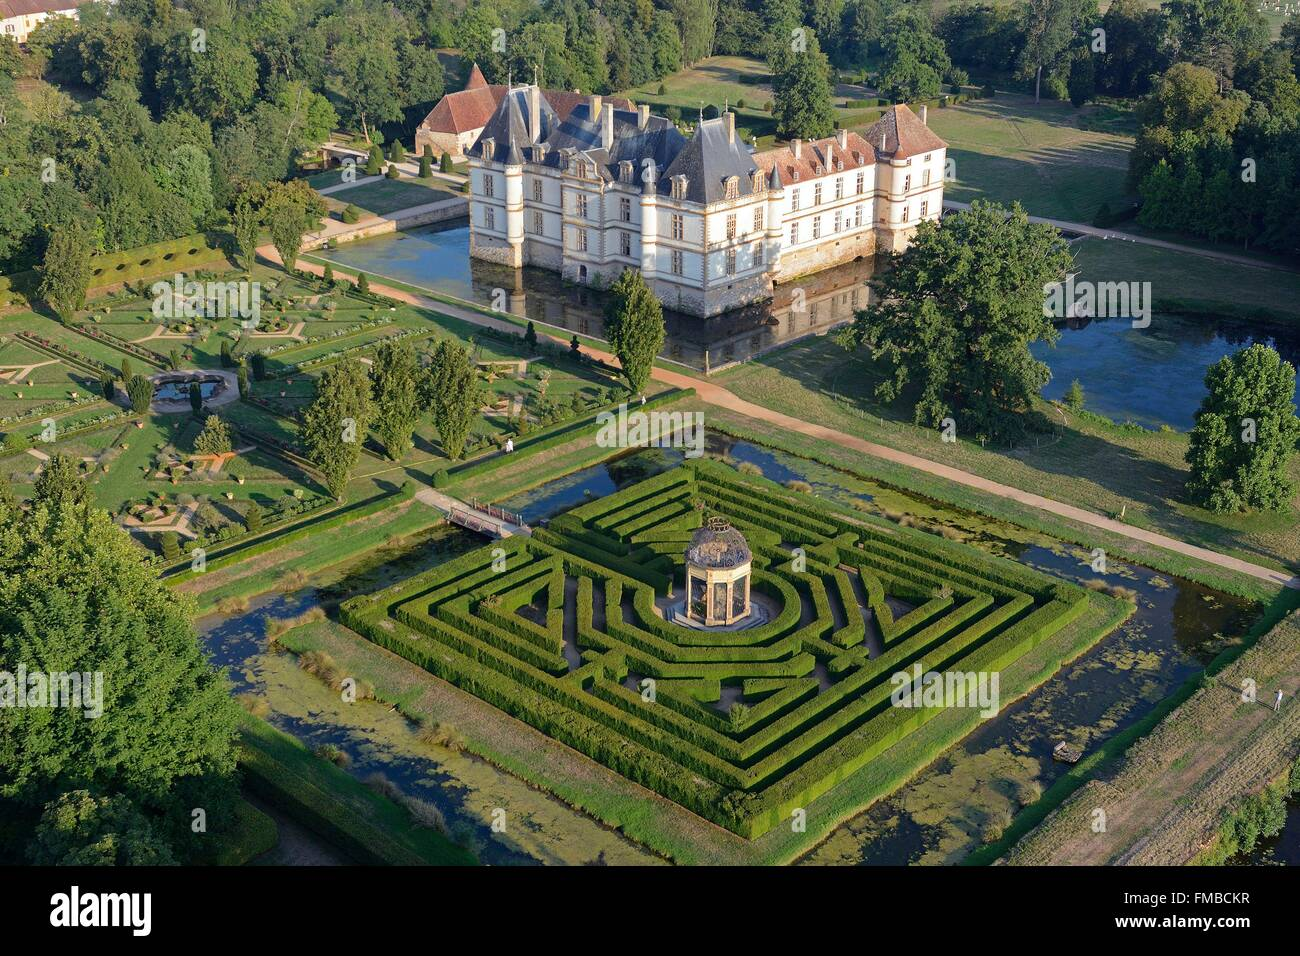 Aerial View Garden Labyrinth Hedge Stock Photos & Aerial View Garden on